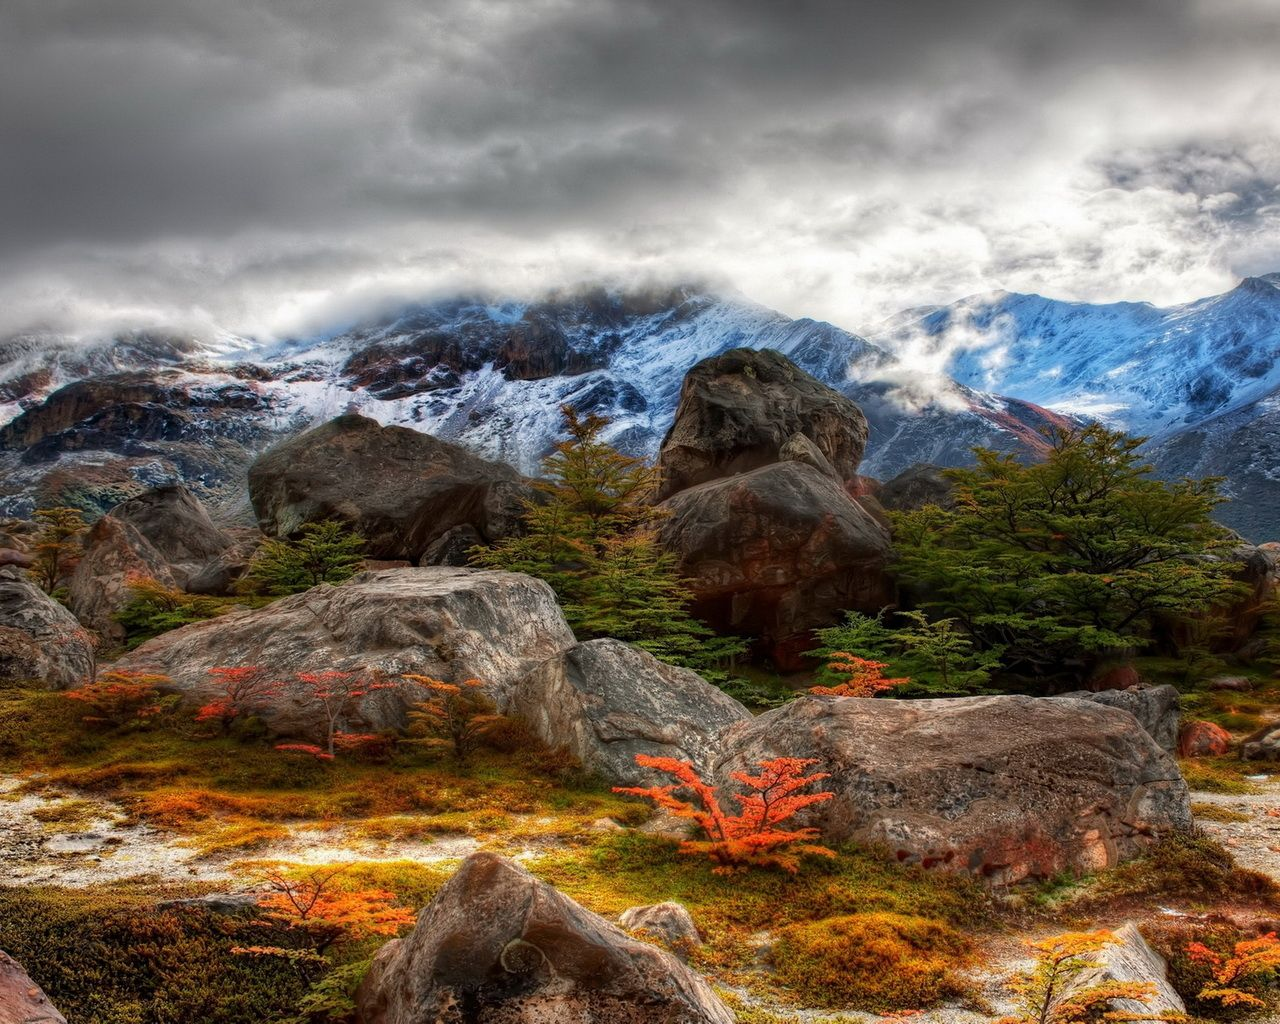 georgia hdr photography landscapes - photo #17